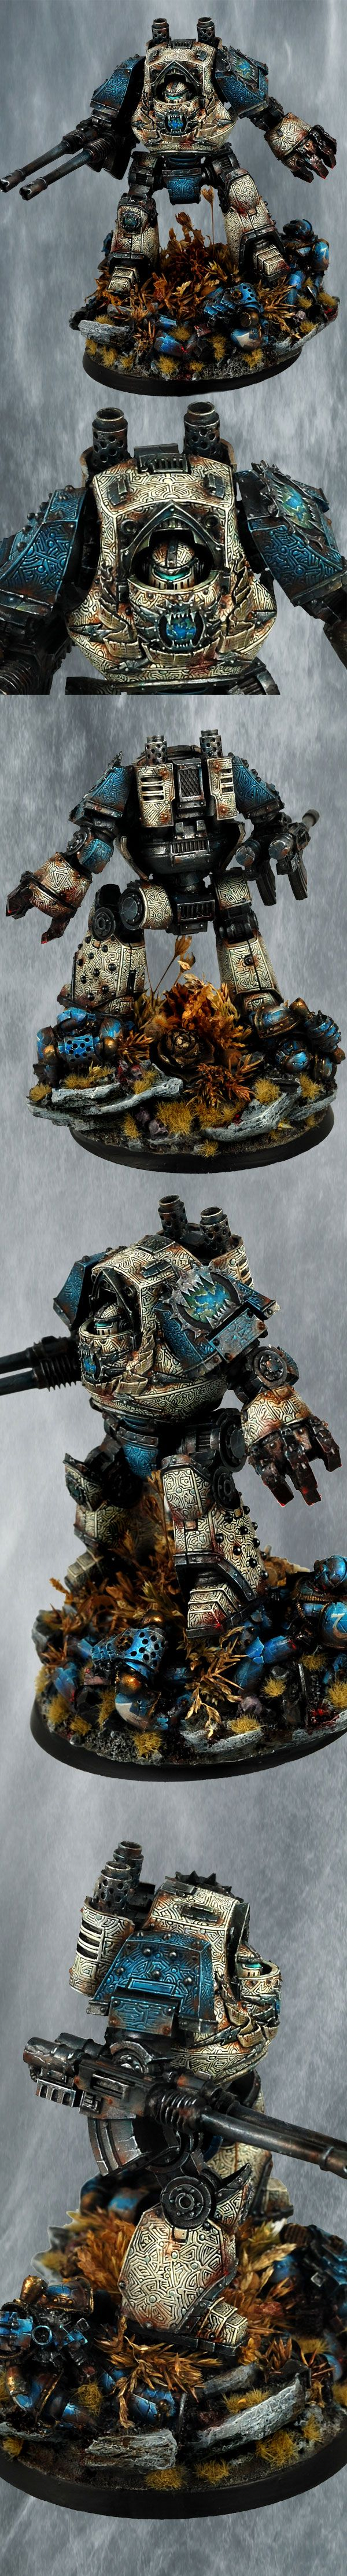 Pre-Heresy Space Marine Contemptor Dreadnought of the World Eaters Chapter.